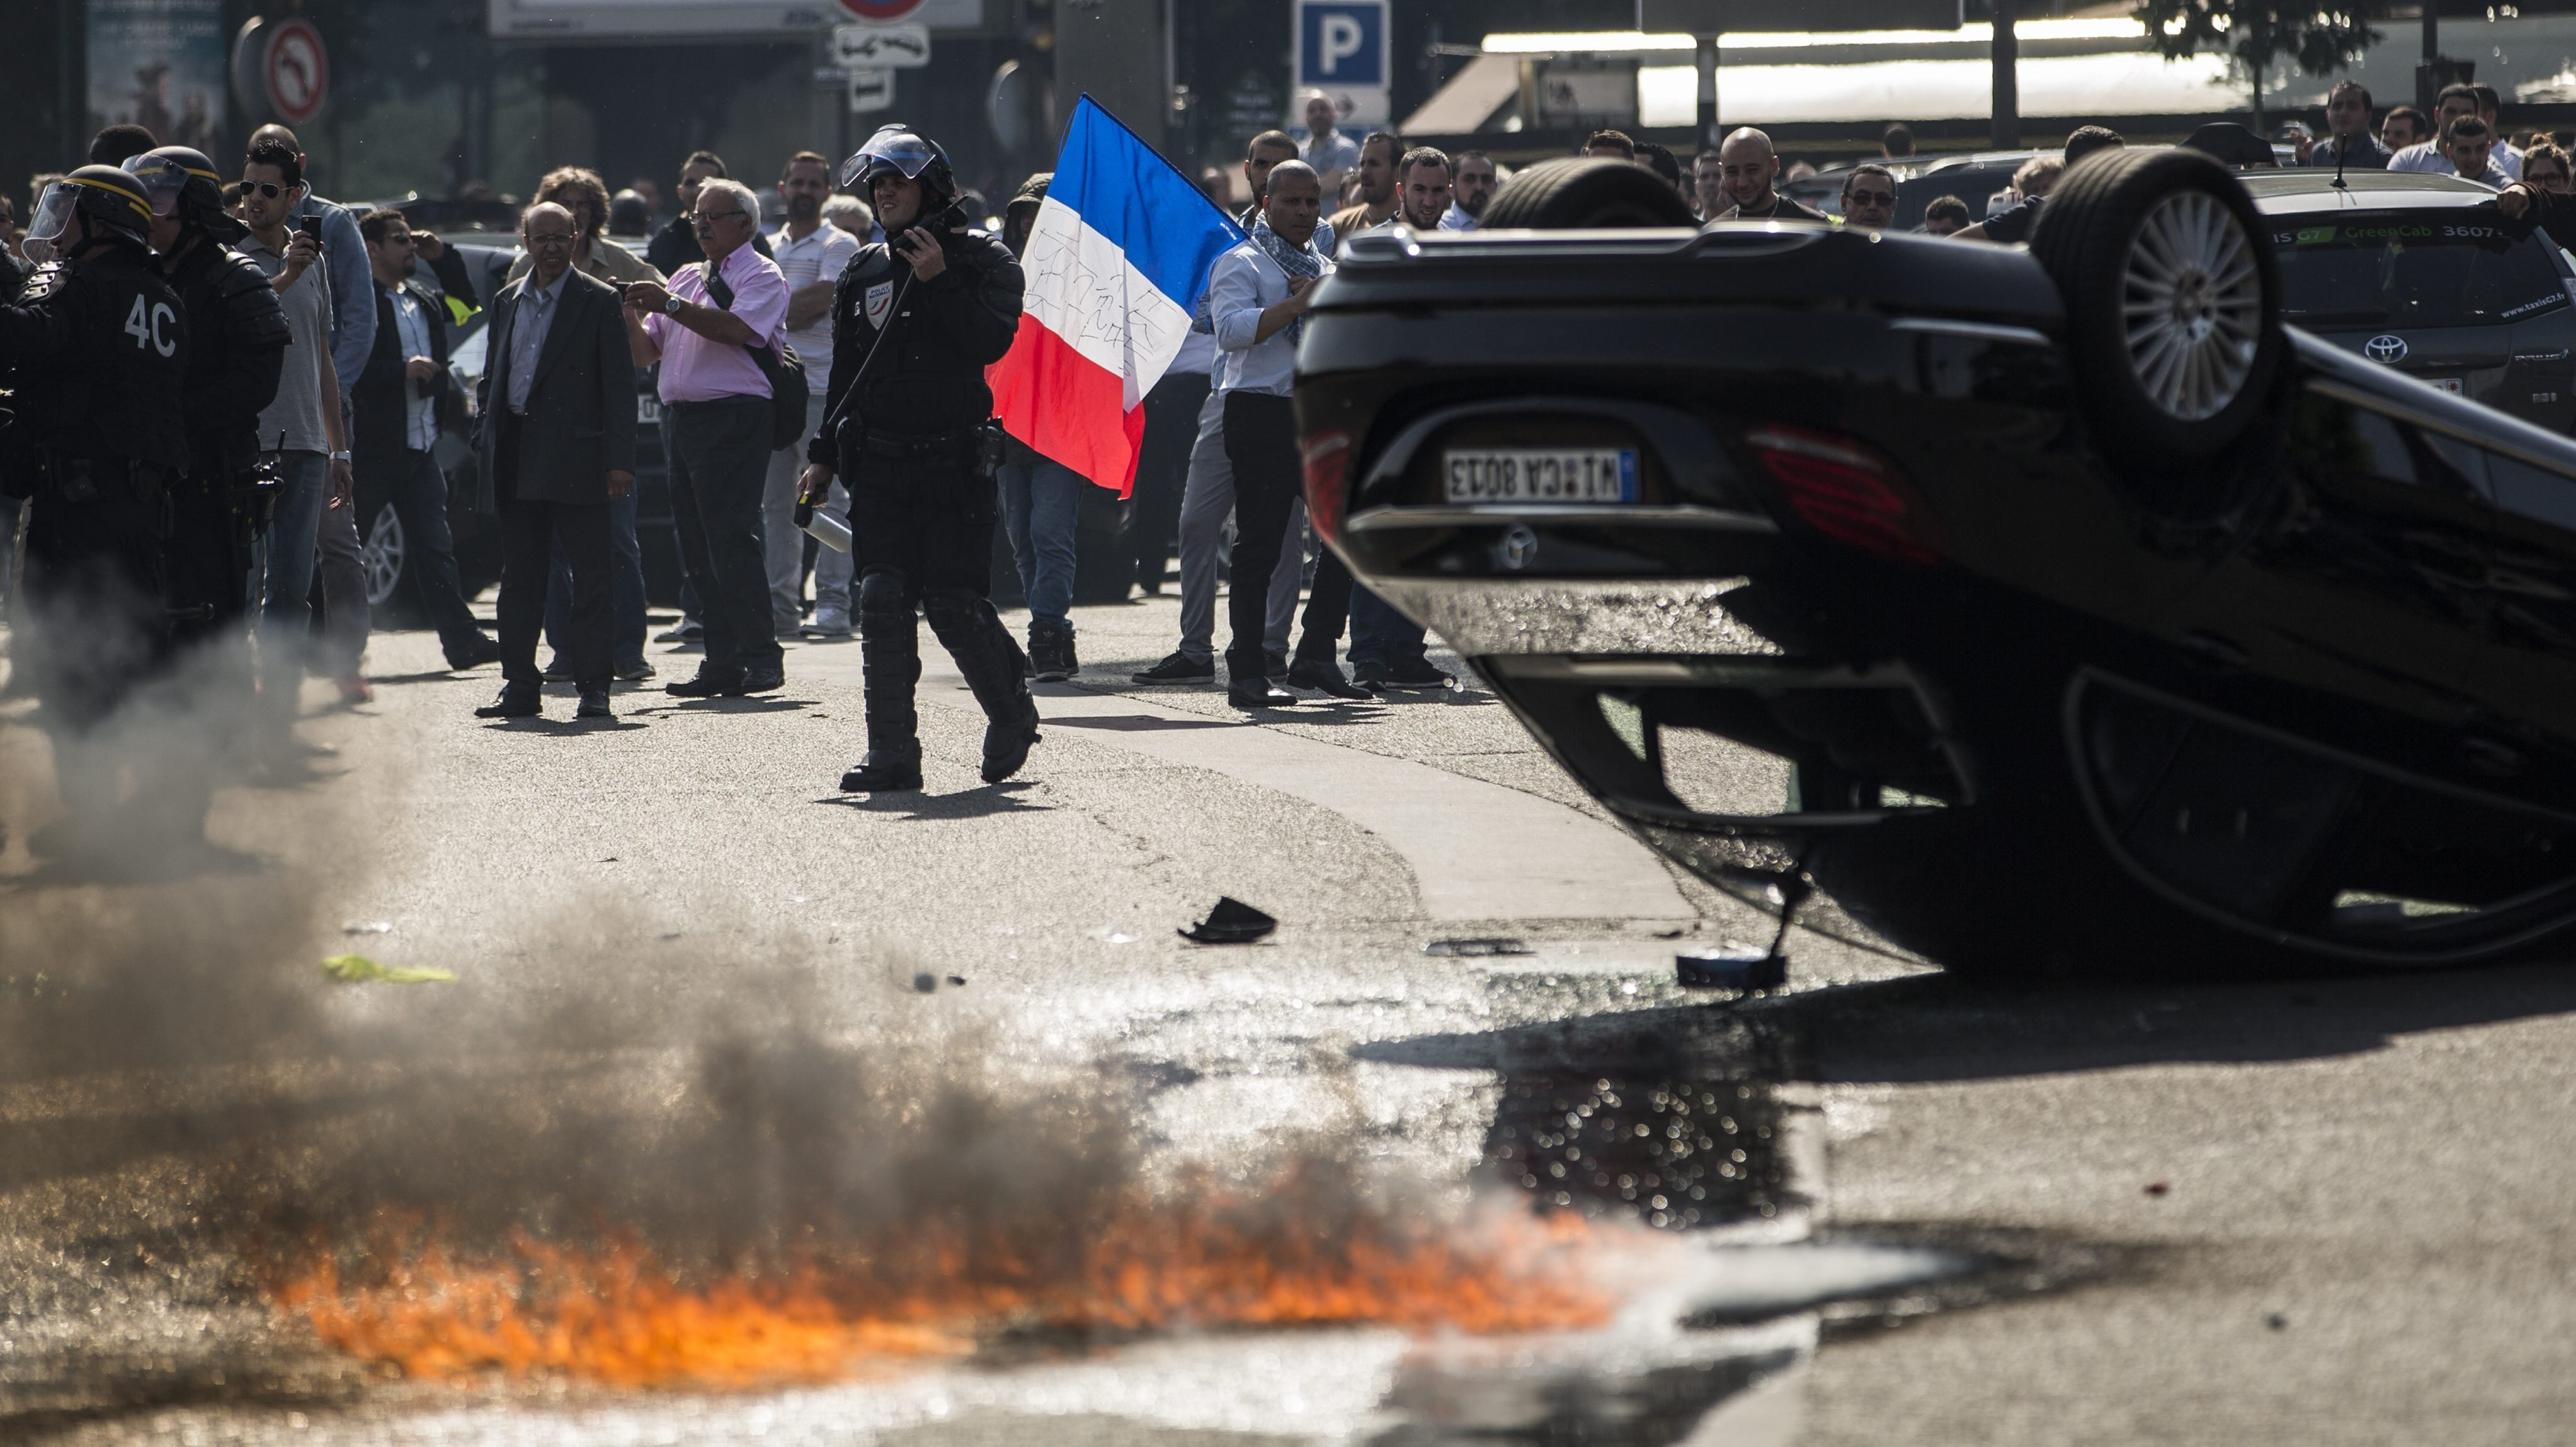 Thousands Of Cabdrivers Clog France's Roads To Protest Uber